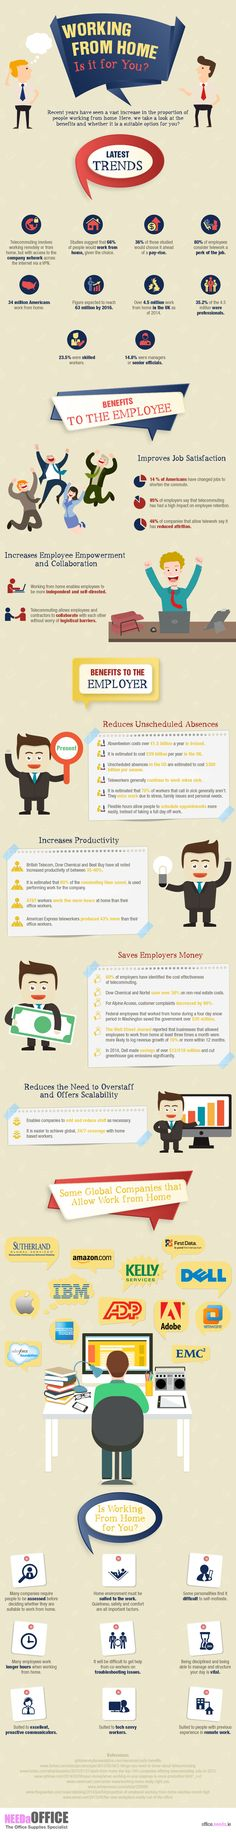 Working-From-Home-Infographic